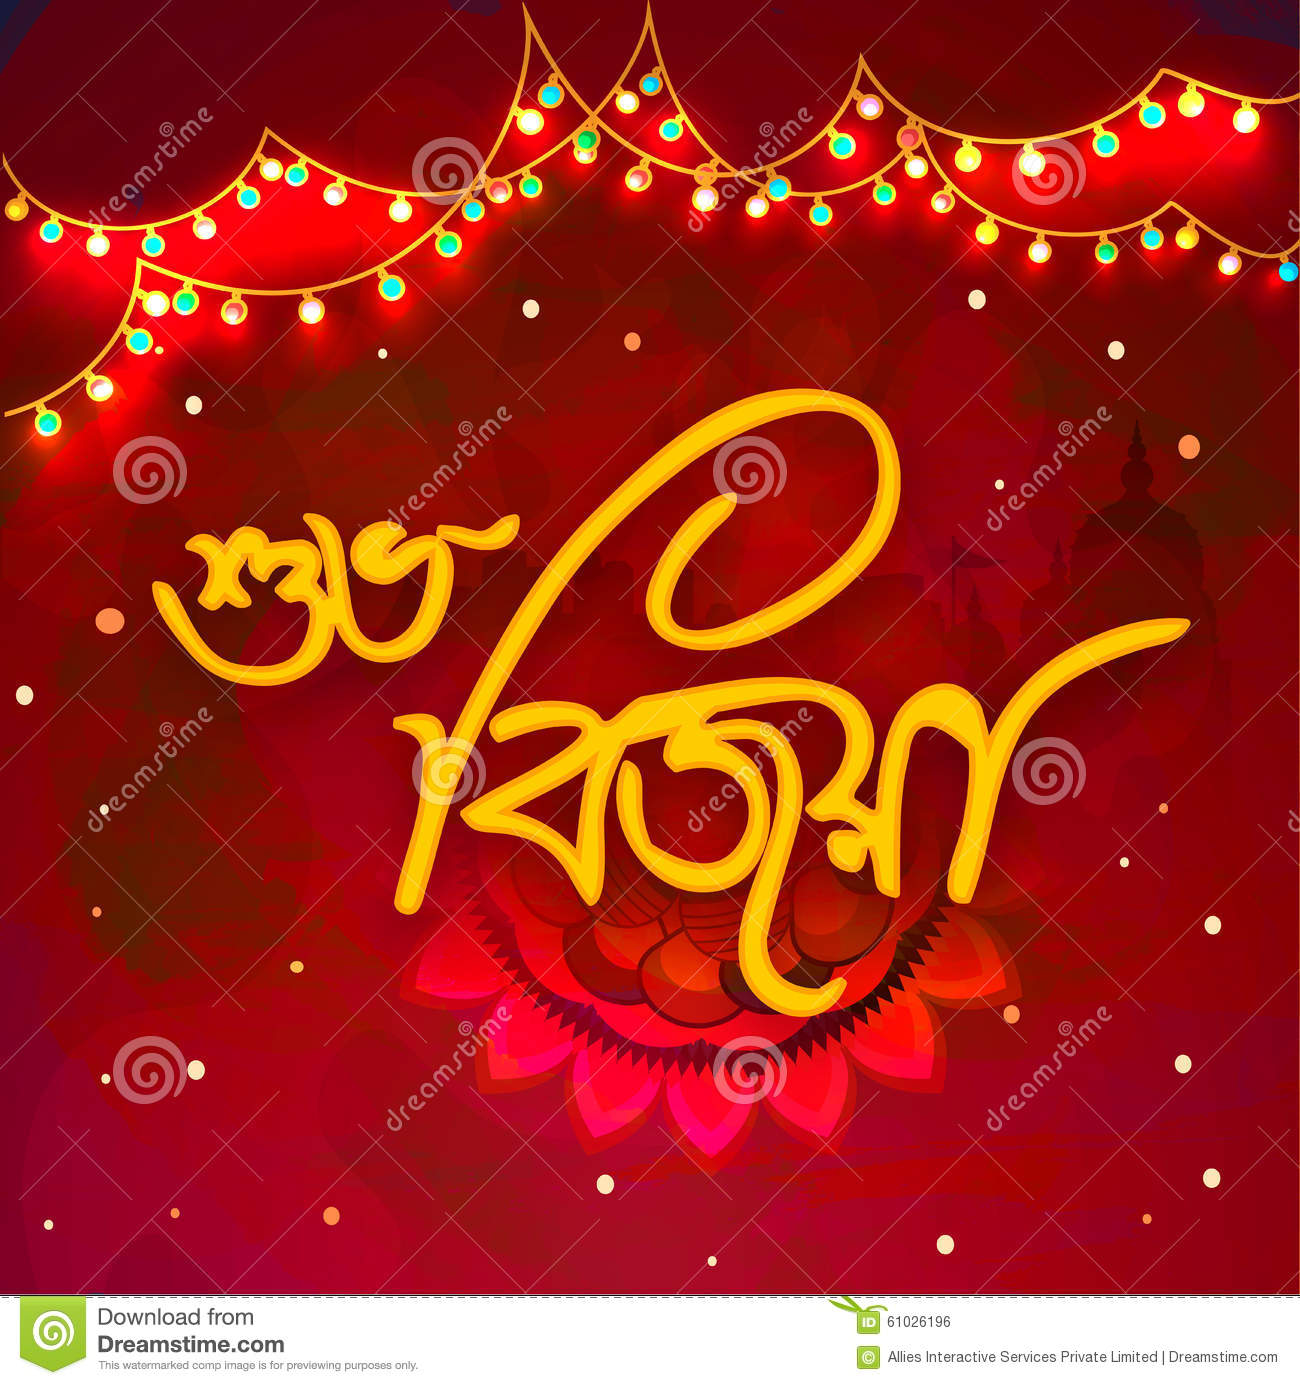 Creative bengali text for happy dussehra stock illustration creative bengali text for happy dussehra kristyandbryce Images